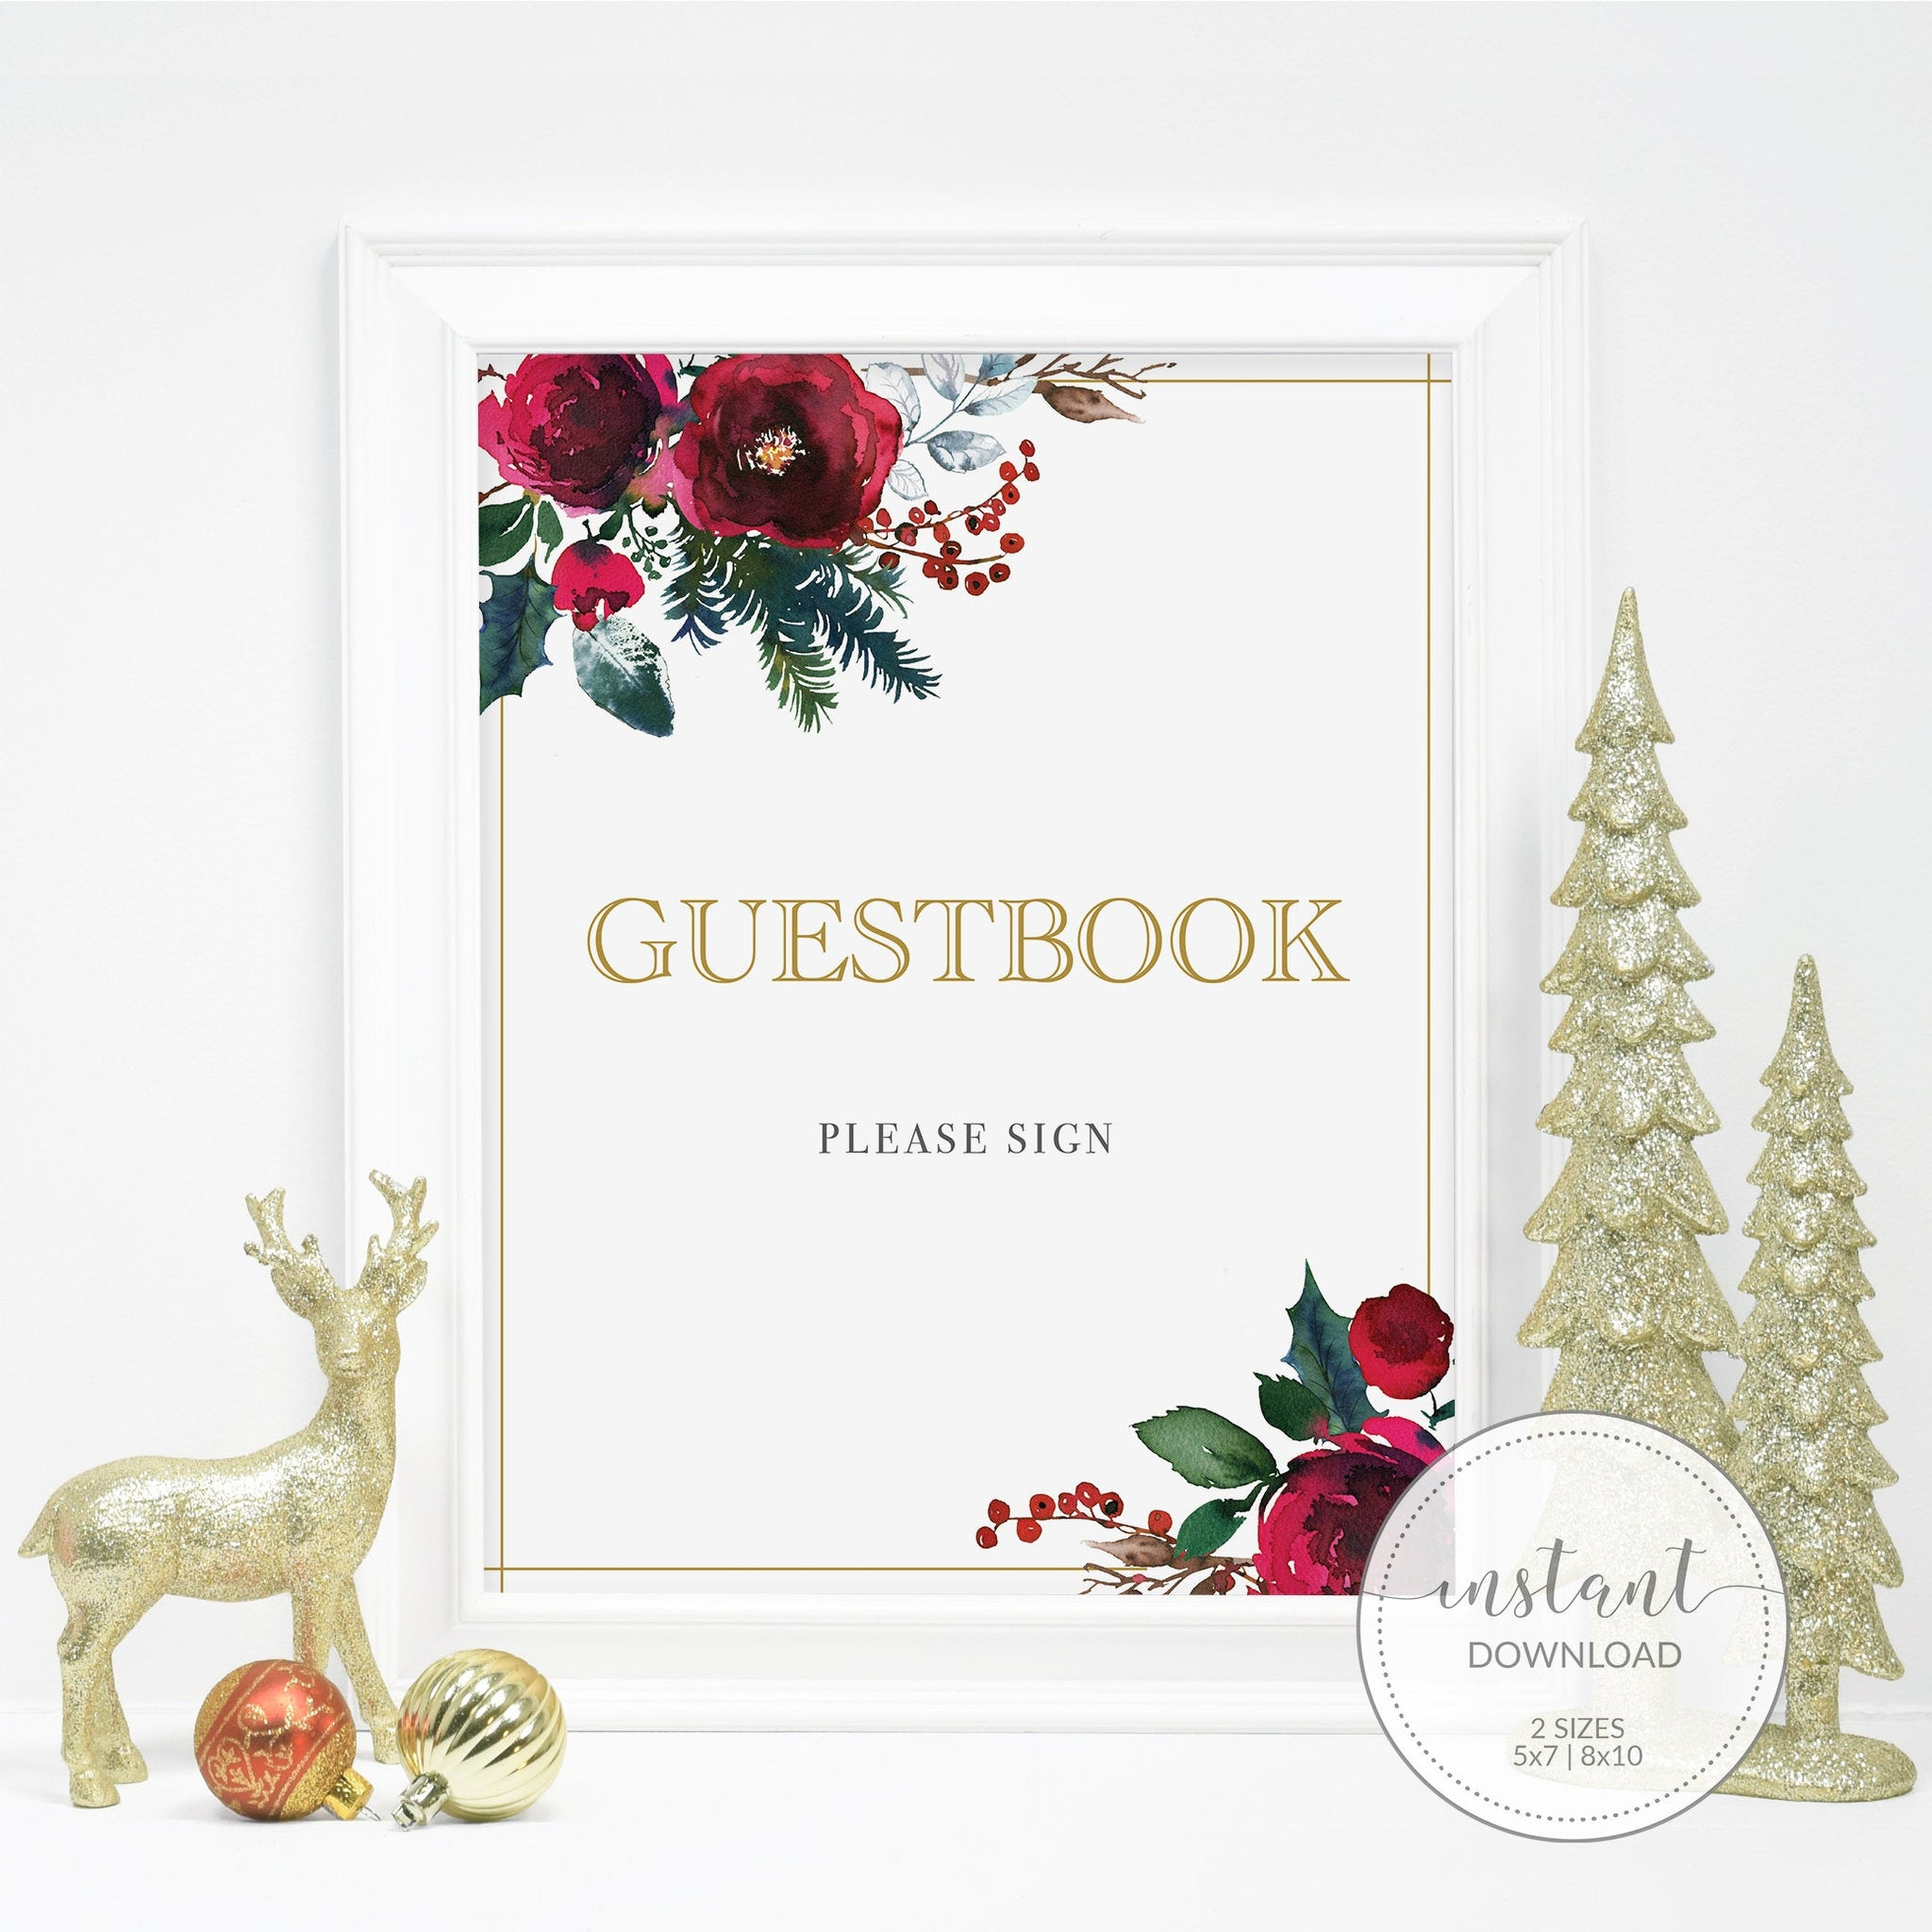 Christmas Wedding Guestbook Sign Printable, Christmas Bridal Shower Decorations, Christmas Baby Shower Decor, INSTANT DOWNLOAD - CG100